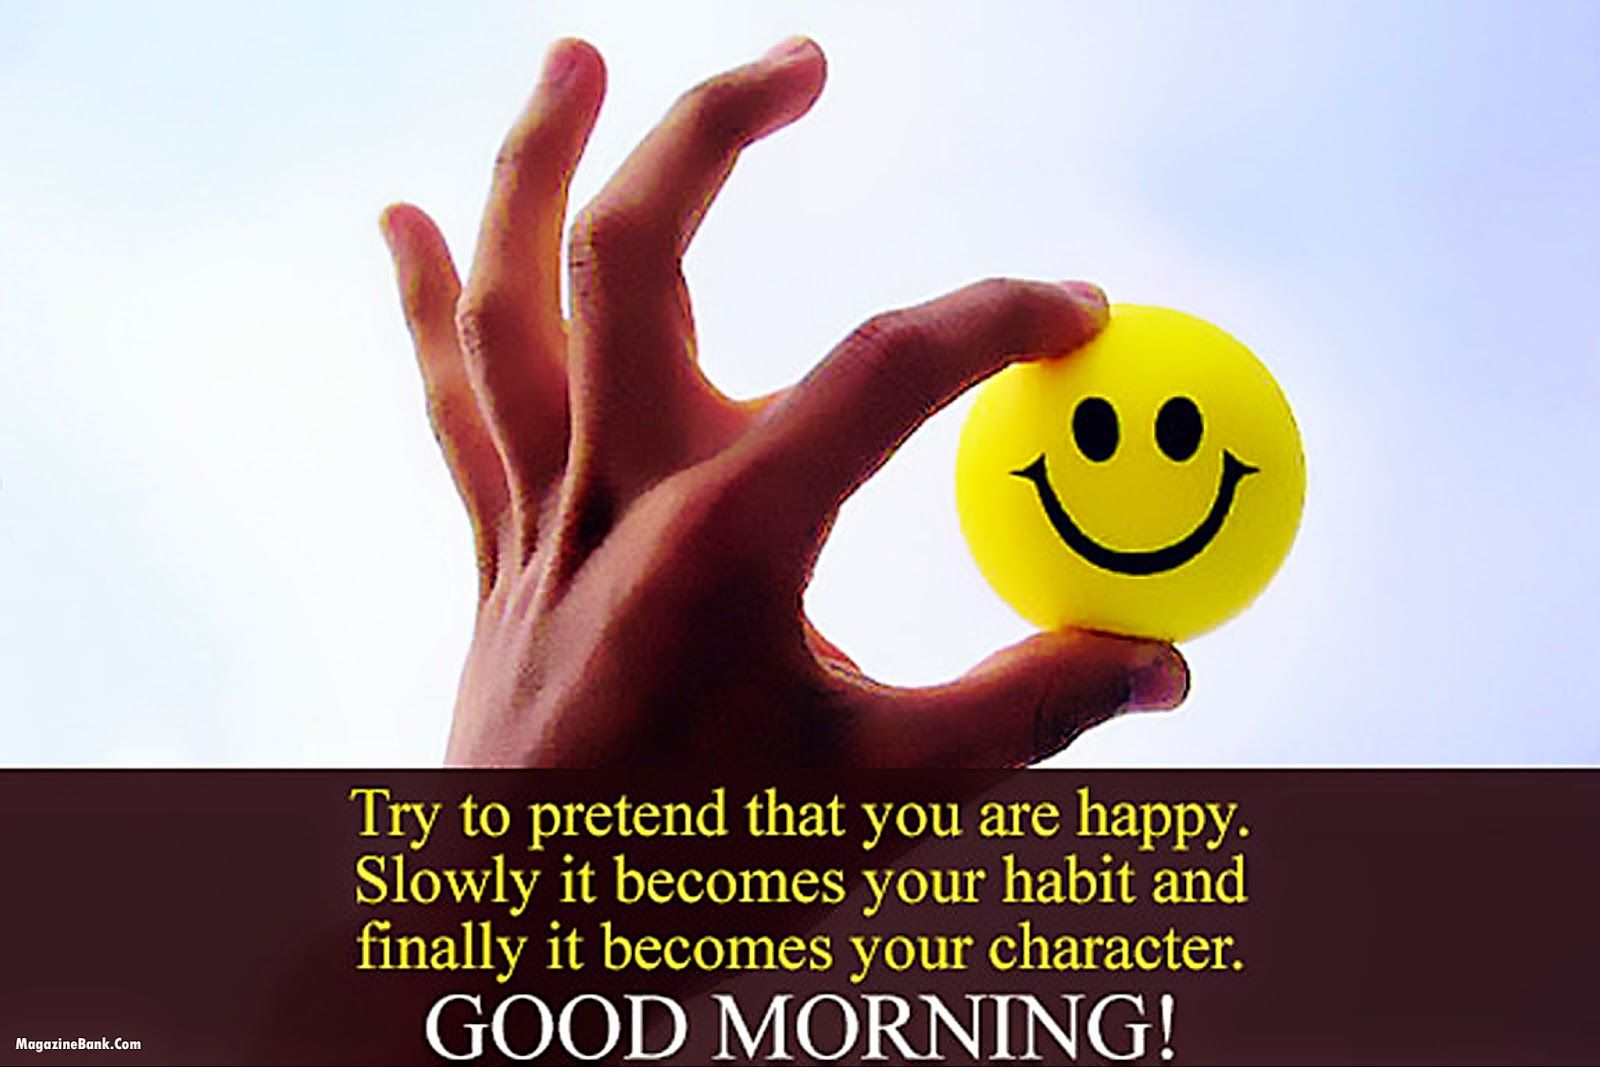 Good morning sms messages have a nice day in english good morning good morning sms messages have a nice day in english good morning sms good morning kristyandbryce Choice Image